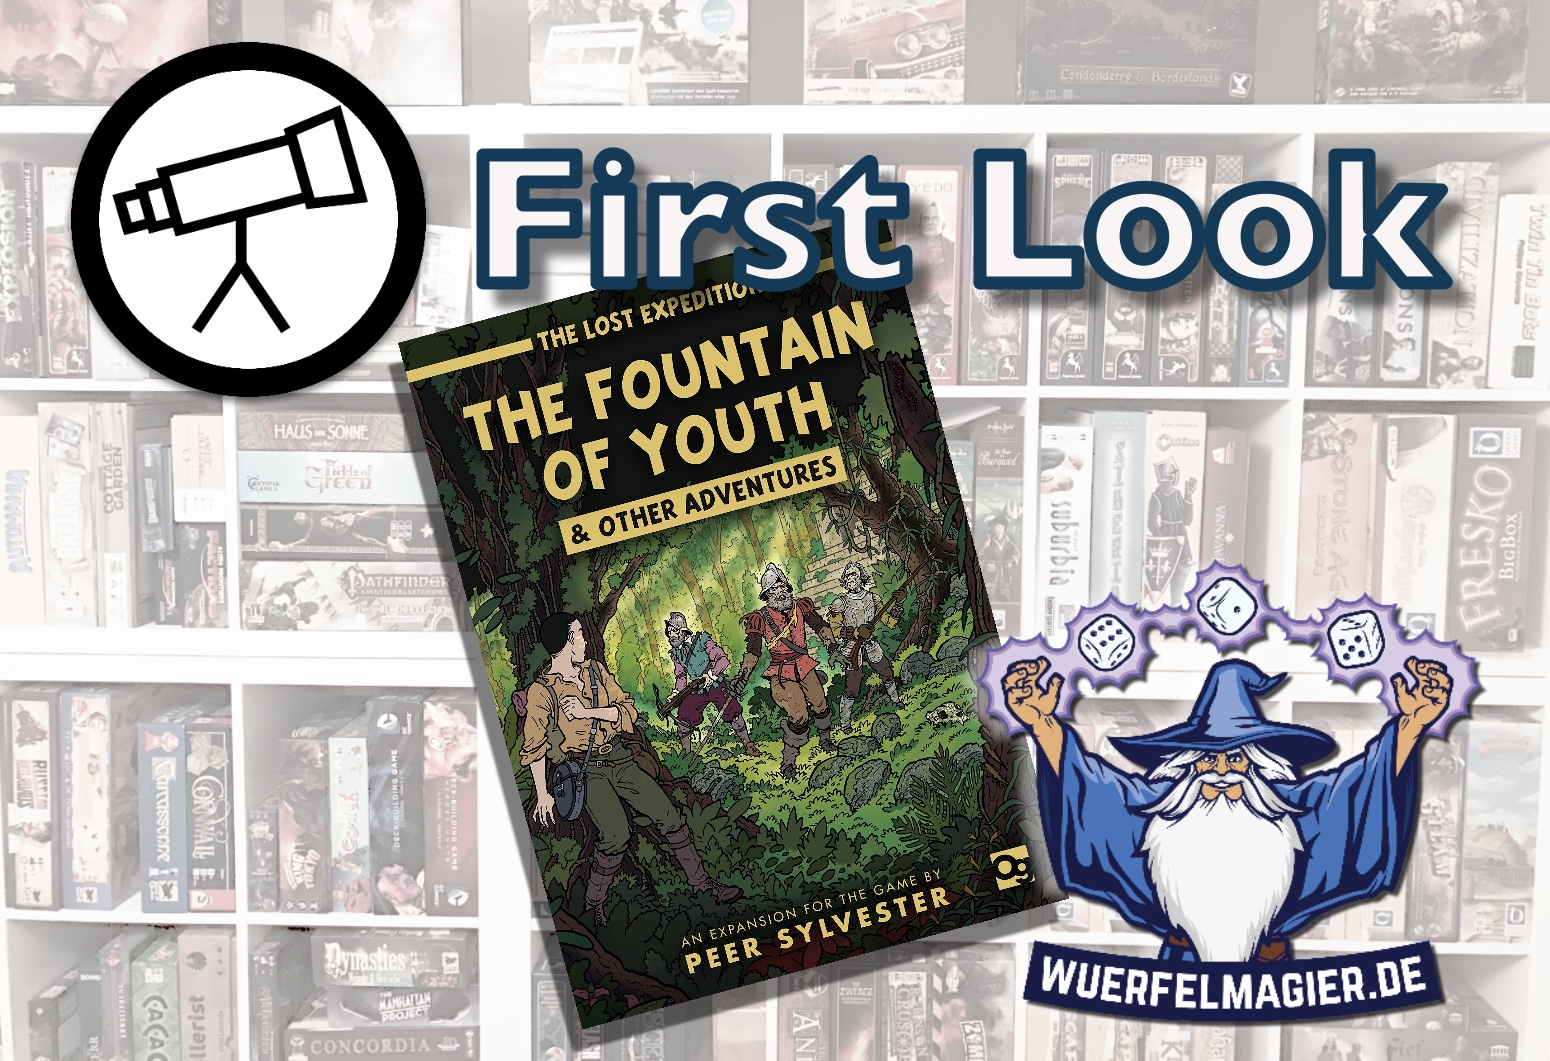 Fountain of Youth osprey Games Peer Sylvester First Look Review Rzension Wuerfelmagier Würfelmagier